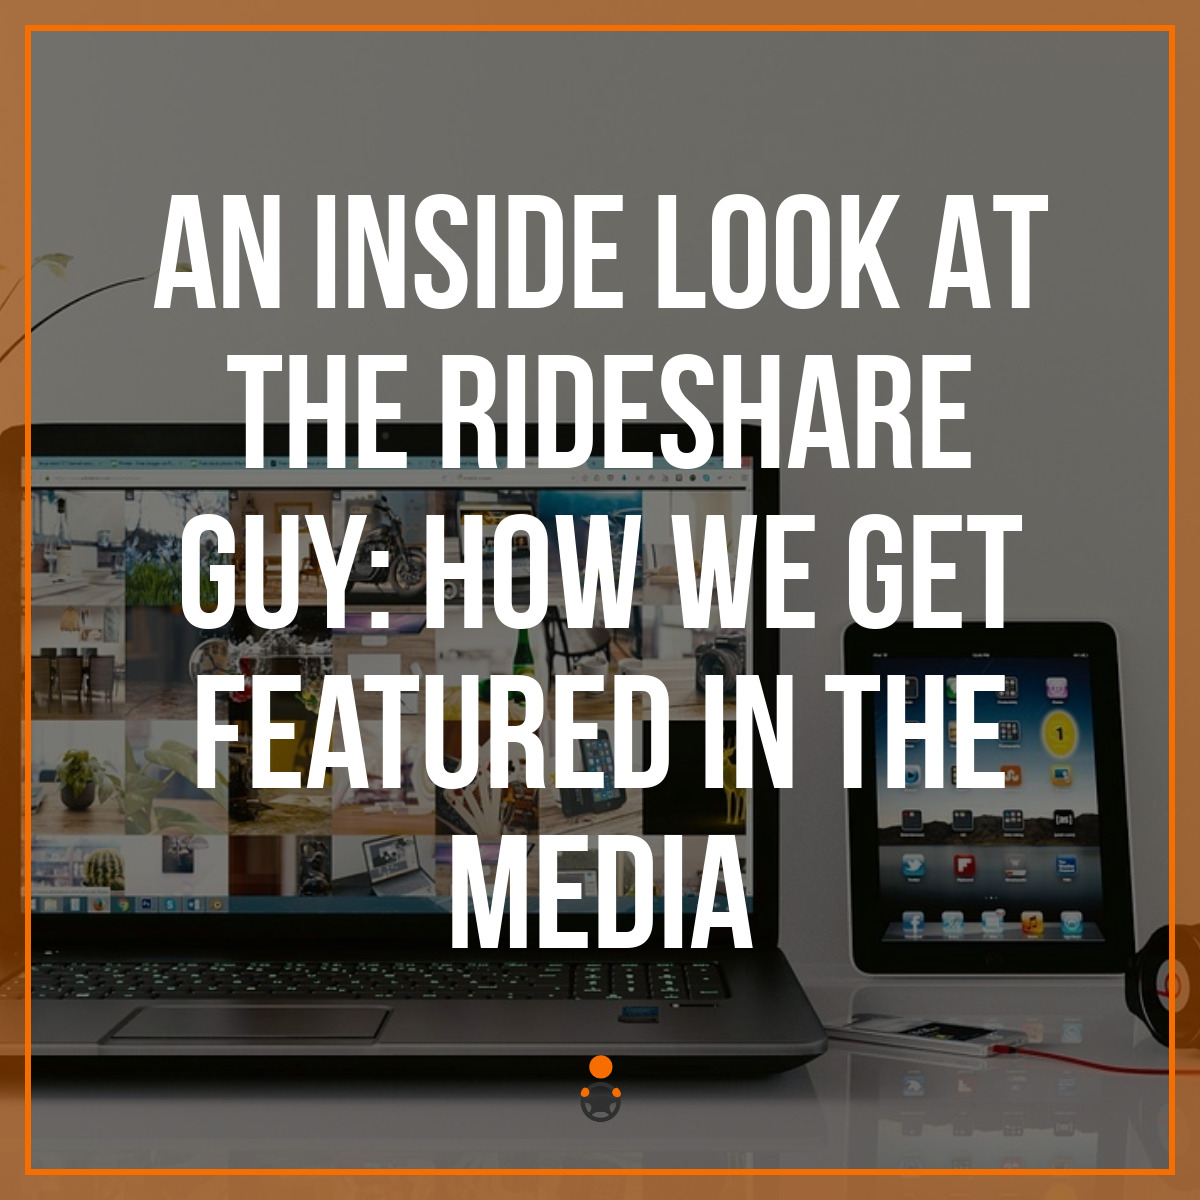 An Inside Look At The Rideshare Guy: How We Get Featured in the Media